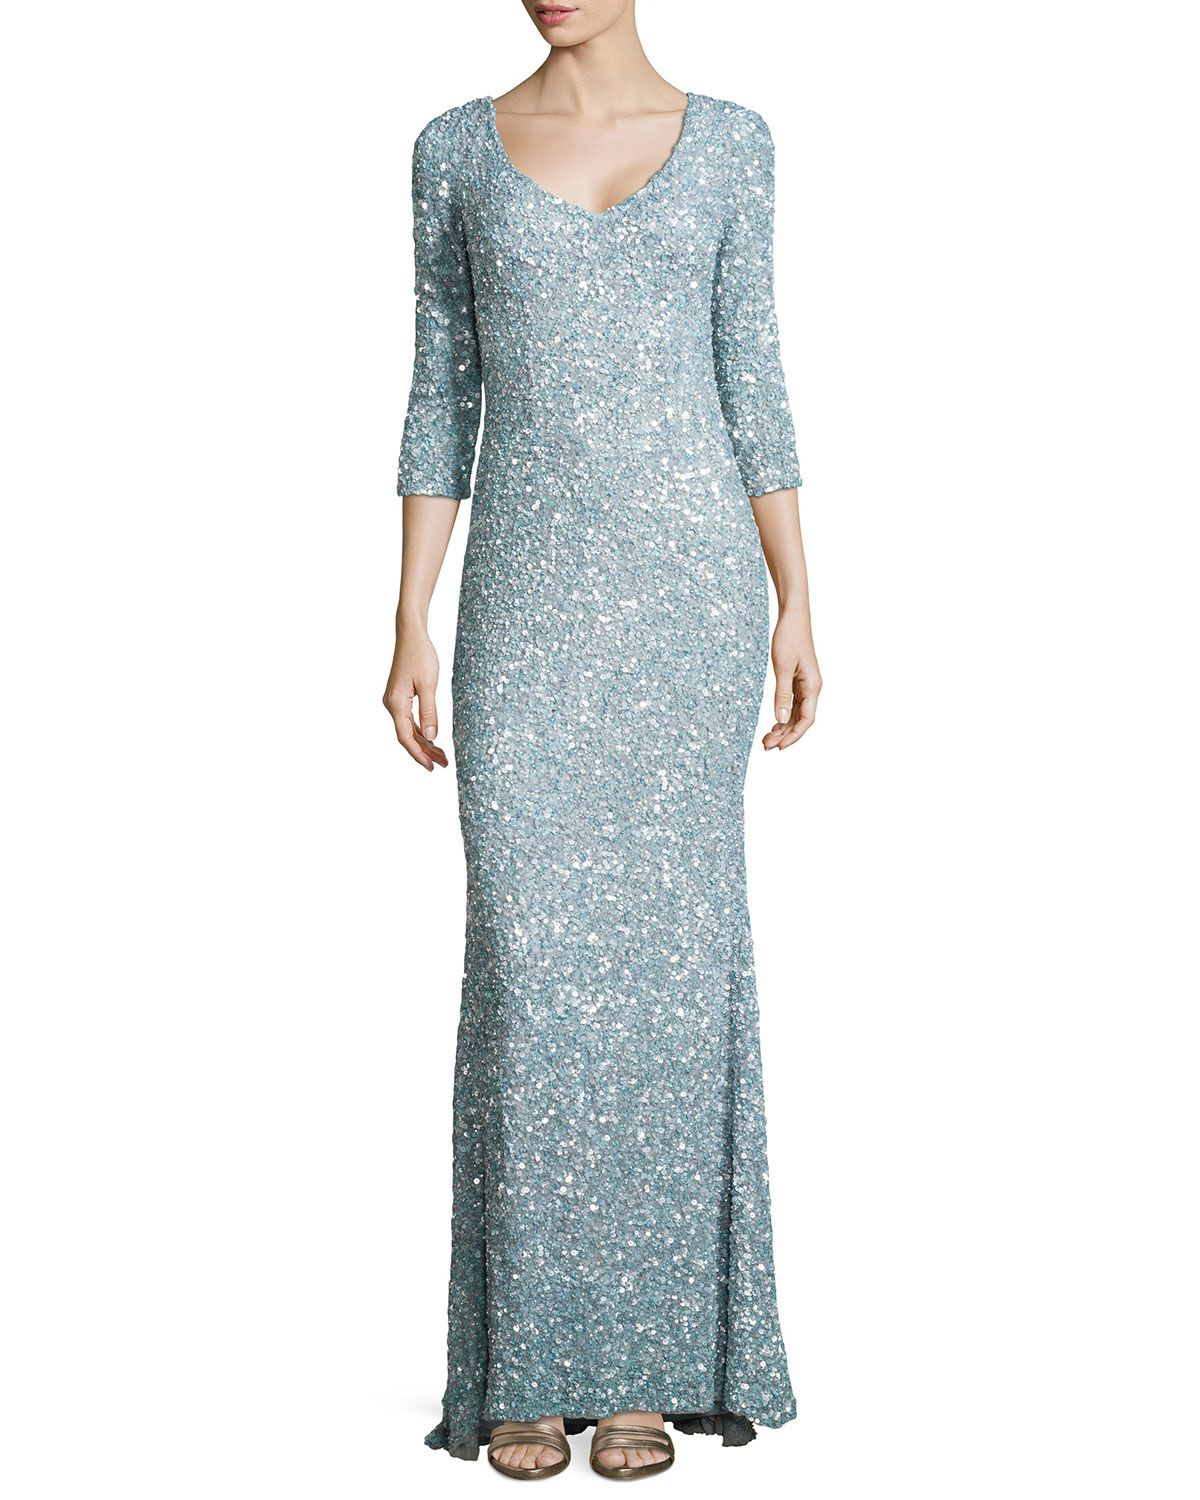 Theia 3/4-Sleeve V-Neck Sequined Gown, Cloud Blue | To dream for ...